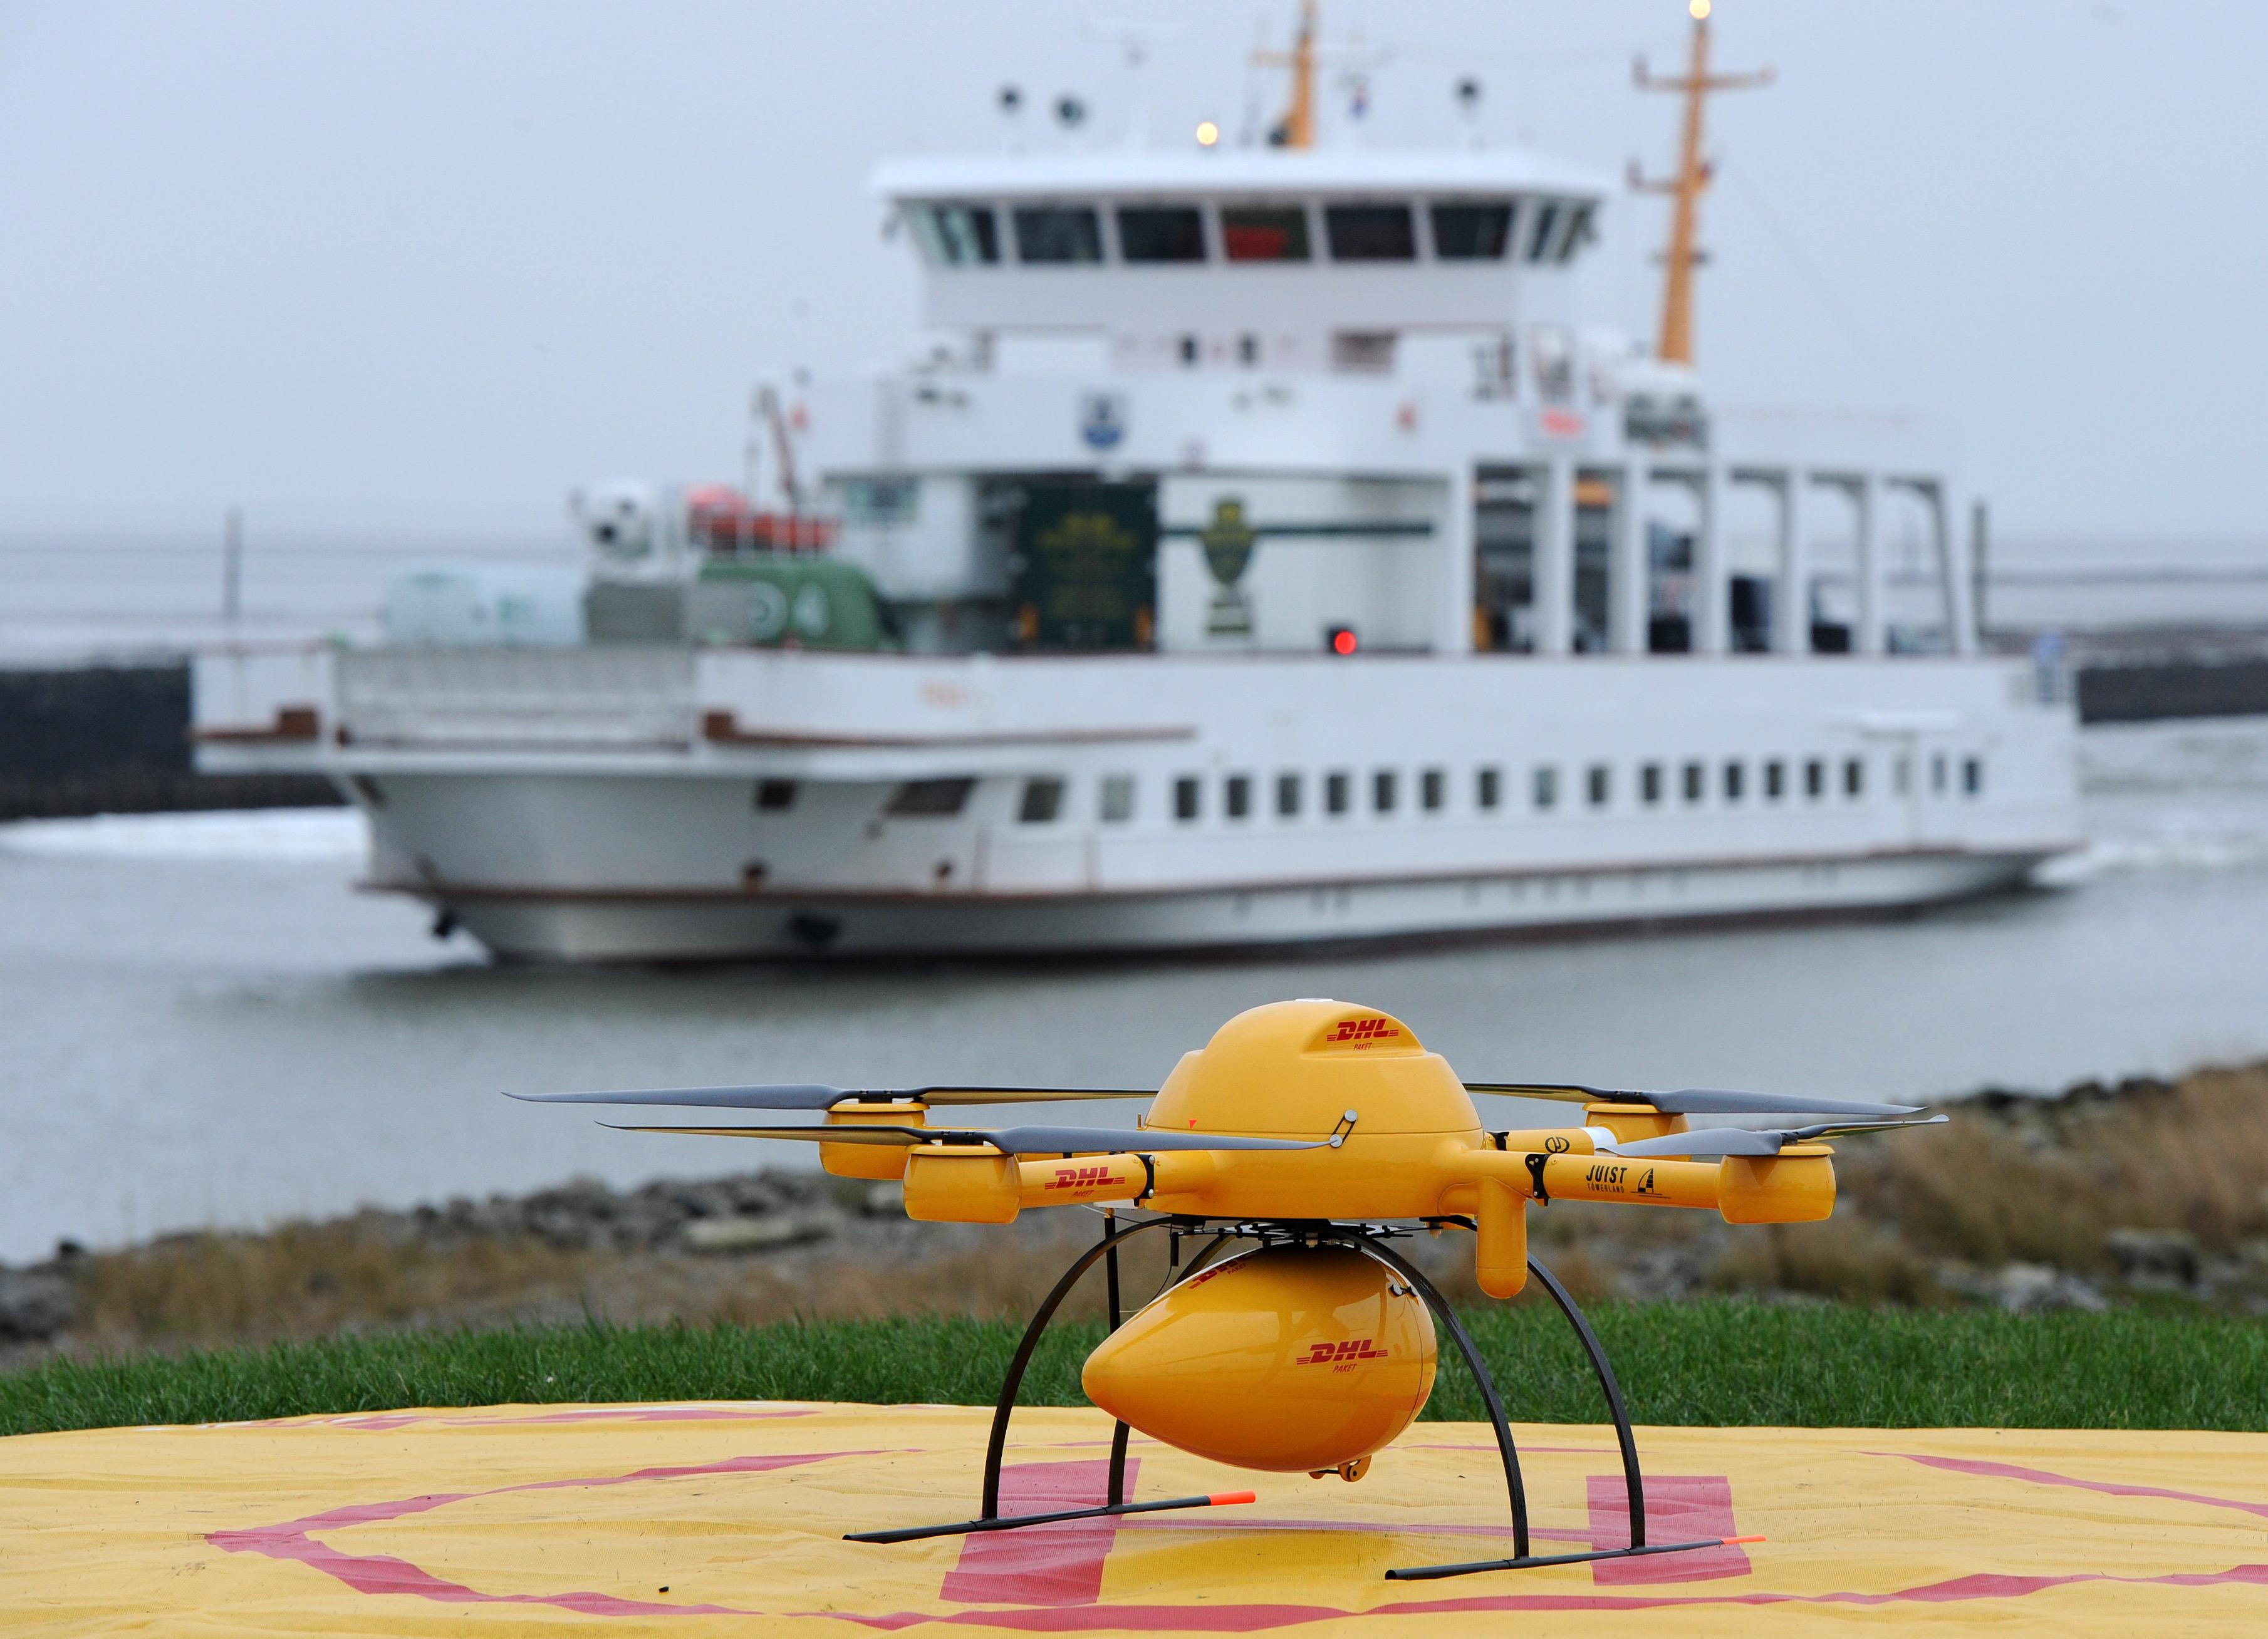 A quadrocopter remotely controlled DHL drone transporting medicines is pictured on November 18, 2014 in Norden-Norddeich, Gernmany (AFP Photo/Ingo Wagner)